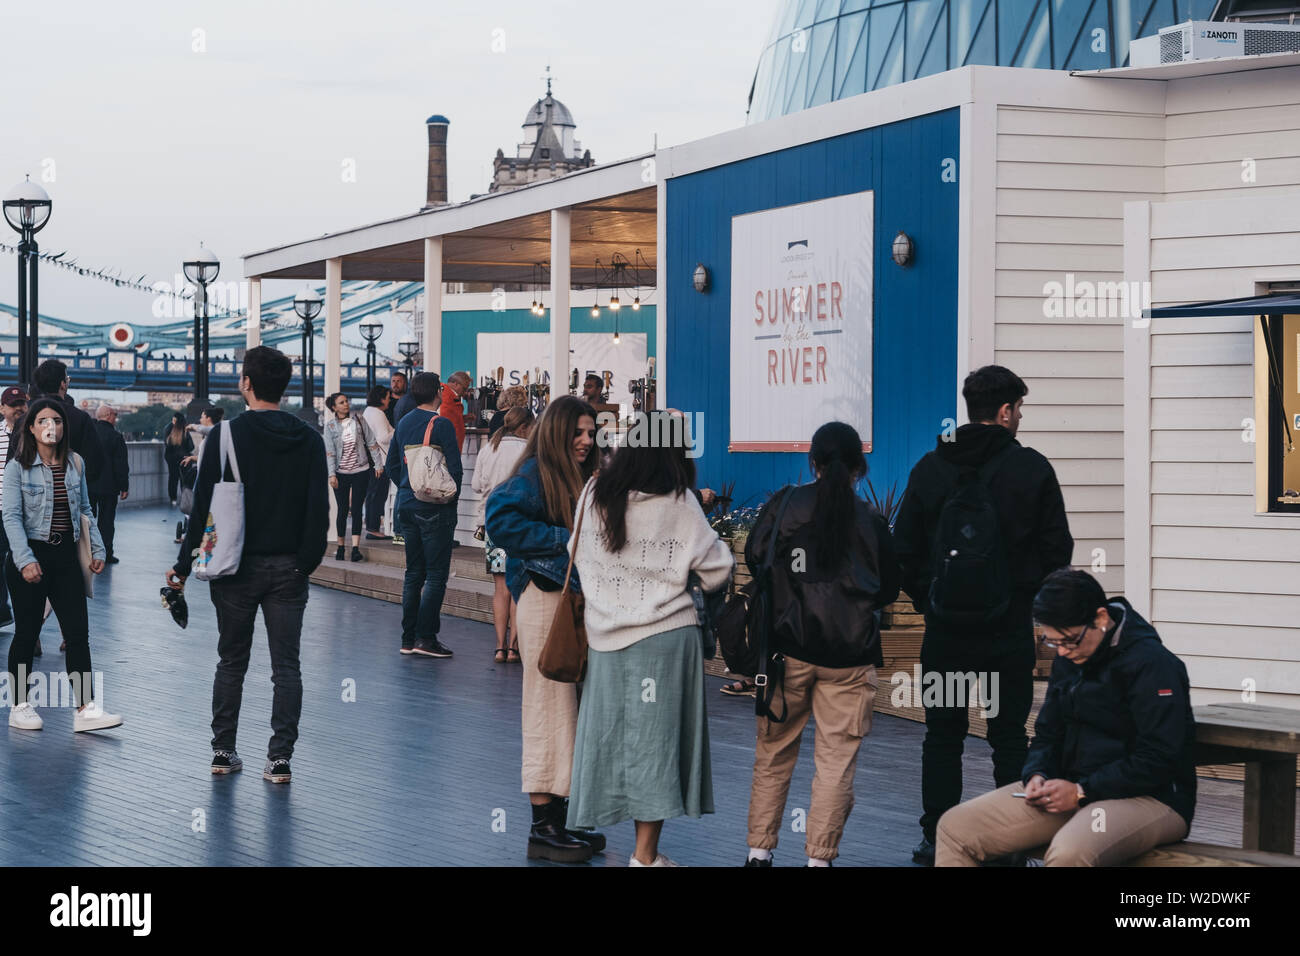 London, UK - June 22, 2019: People at the Summer by the River open air festival taking place in 2019 in London Bridge, London. During blue hour, selec - Stock Image